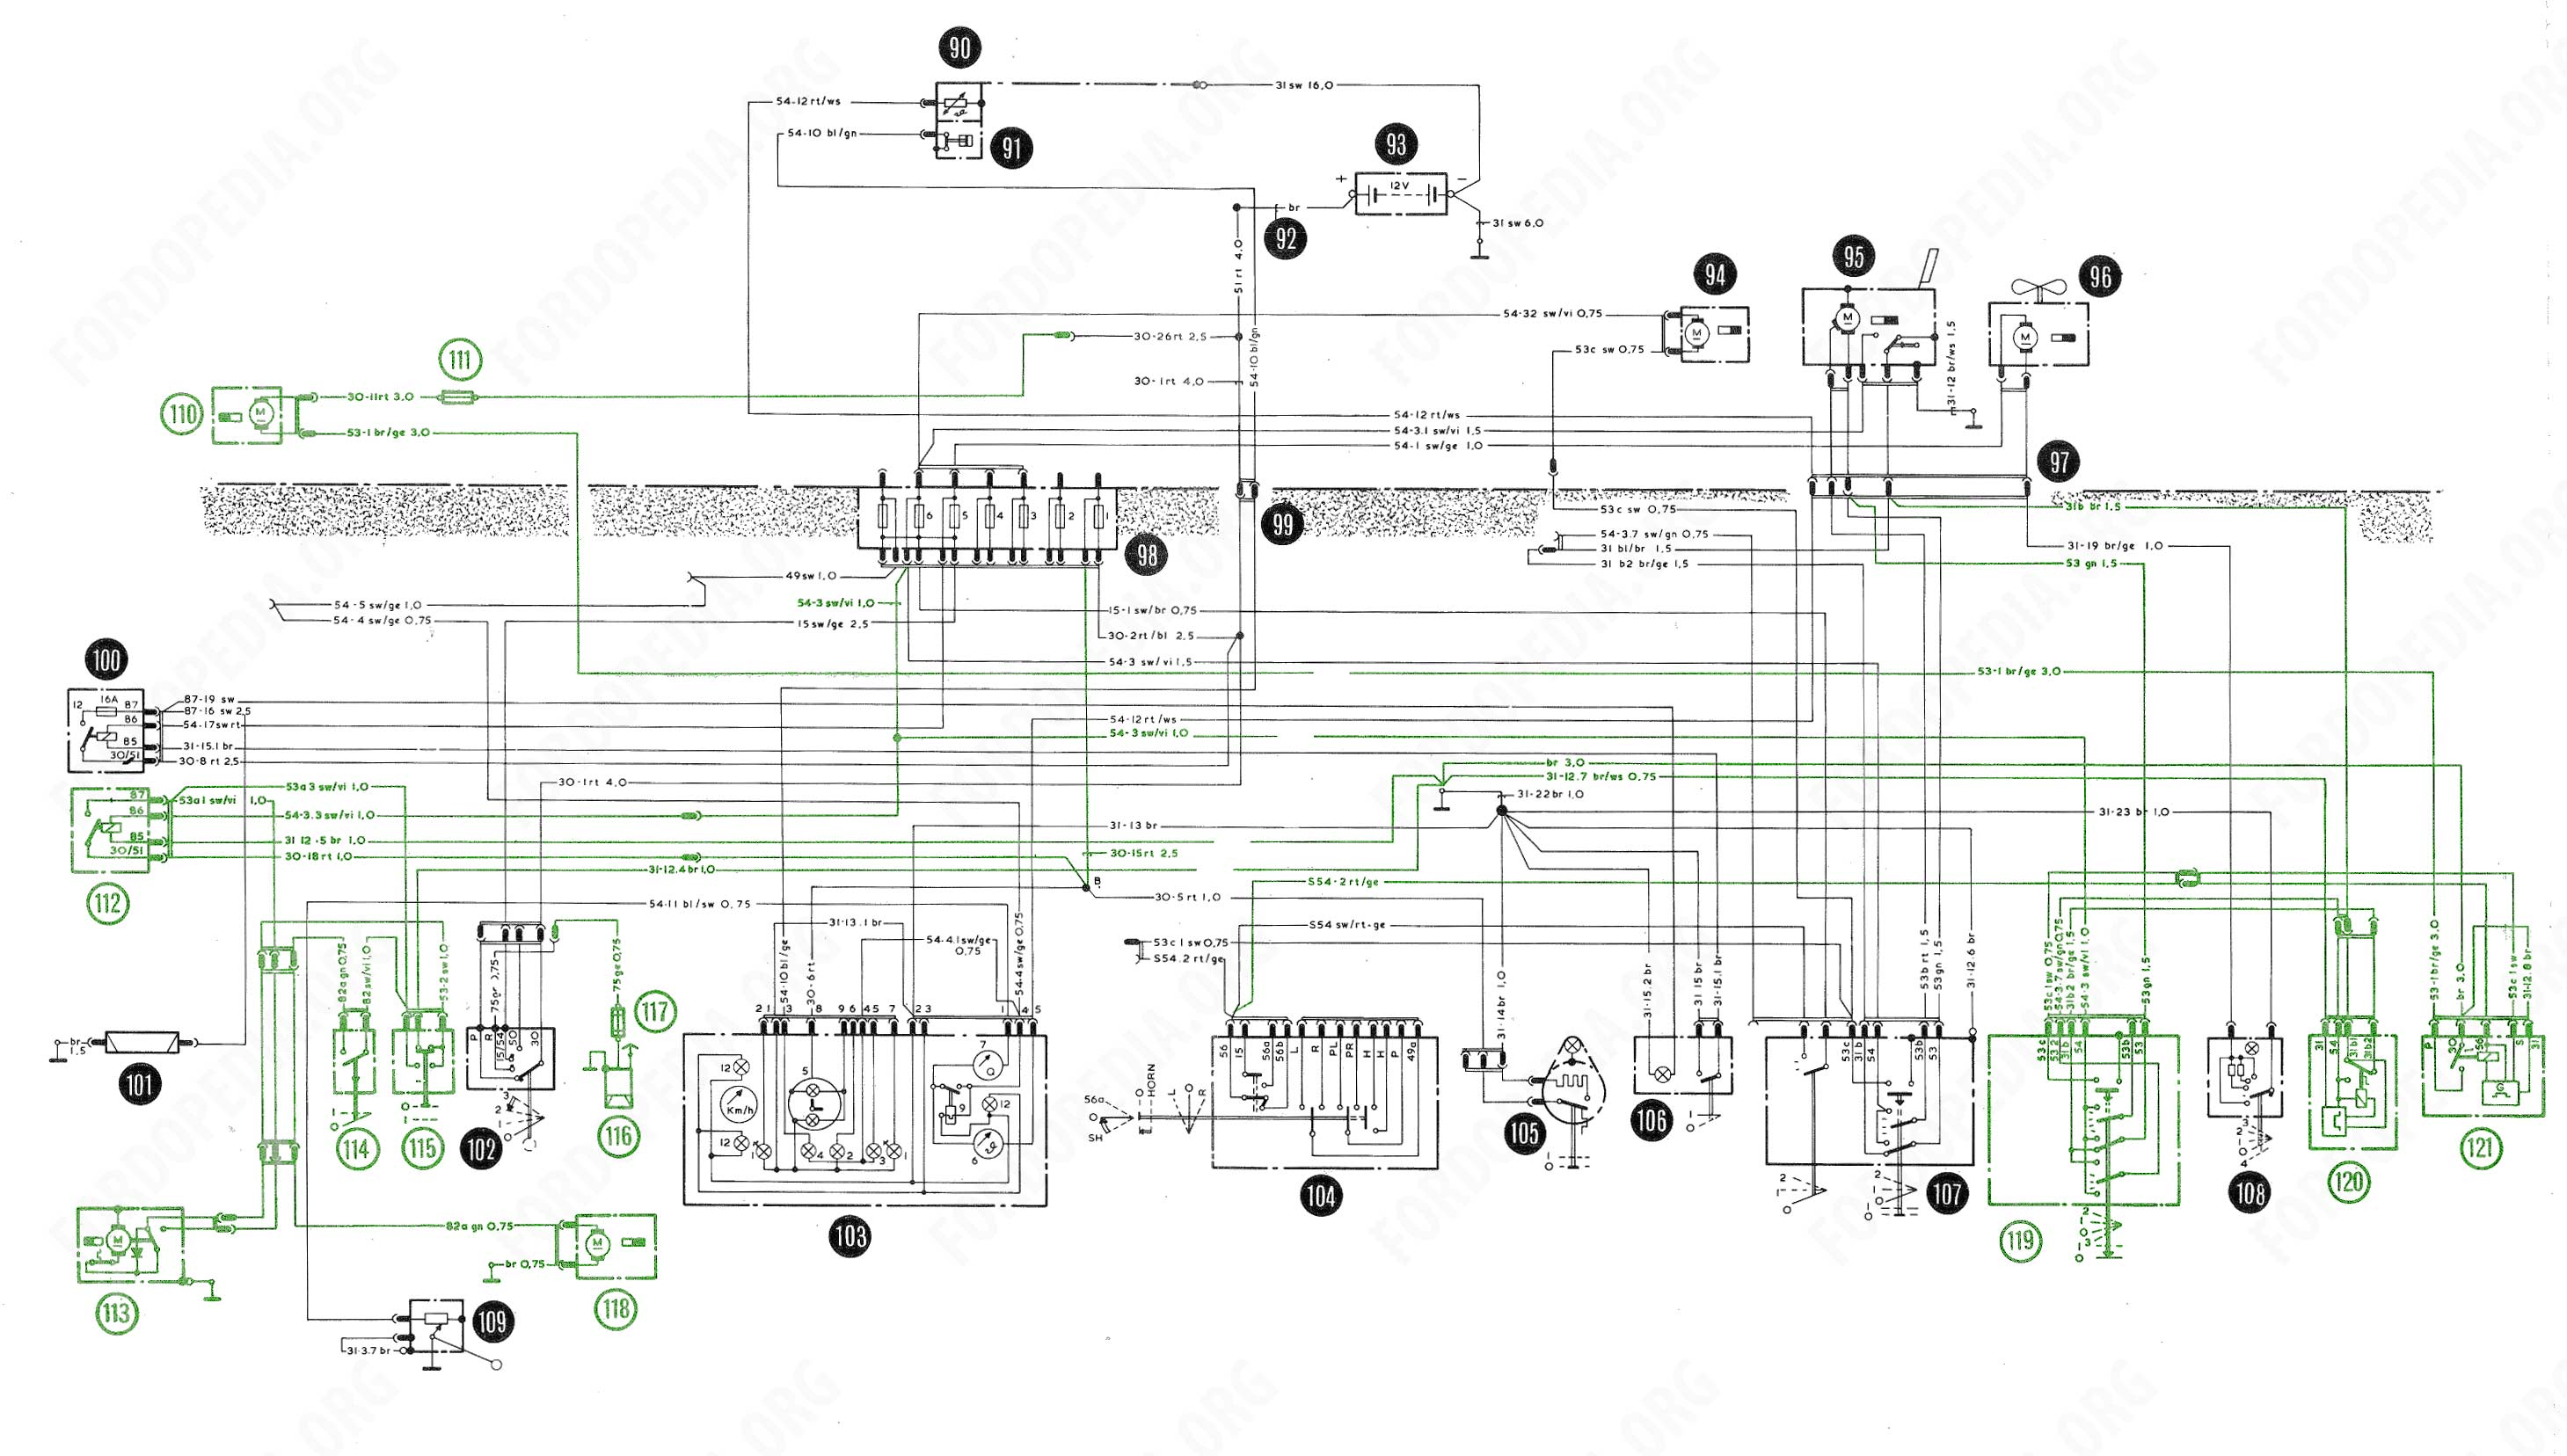 Download full-size image (2919x1656, 412 kB) Wiring diagrams: Taunus TC2 /  Cortina Mk4 - base version, L version, GL